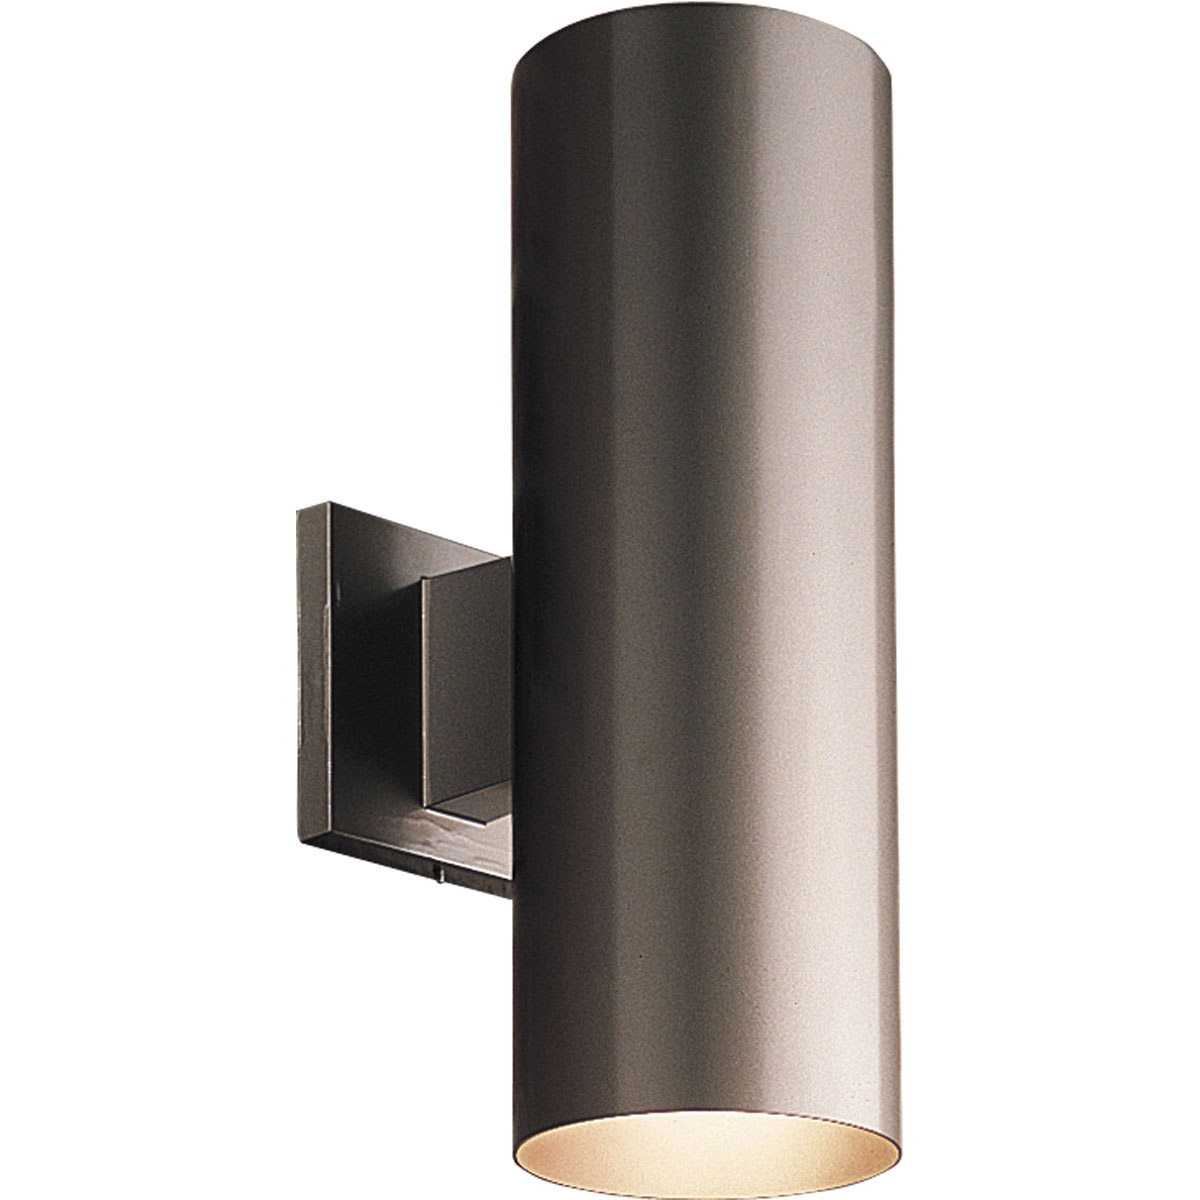 Progress Lighting P5675 20 Cylinder Outdoor Wall Mount Fixture